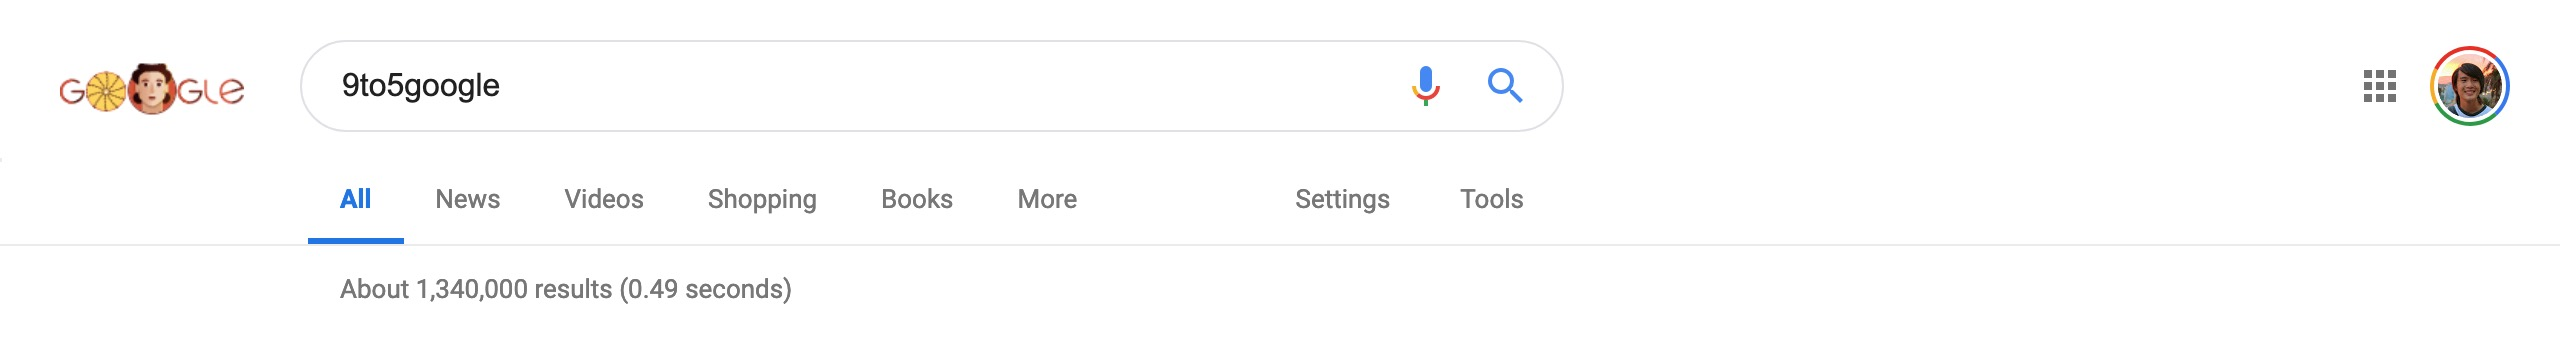 Google removing Notifications Widget